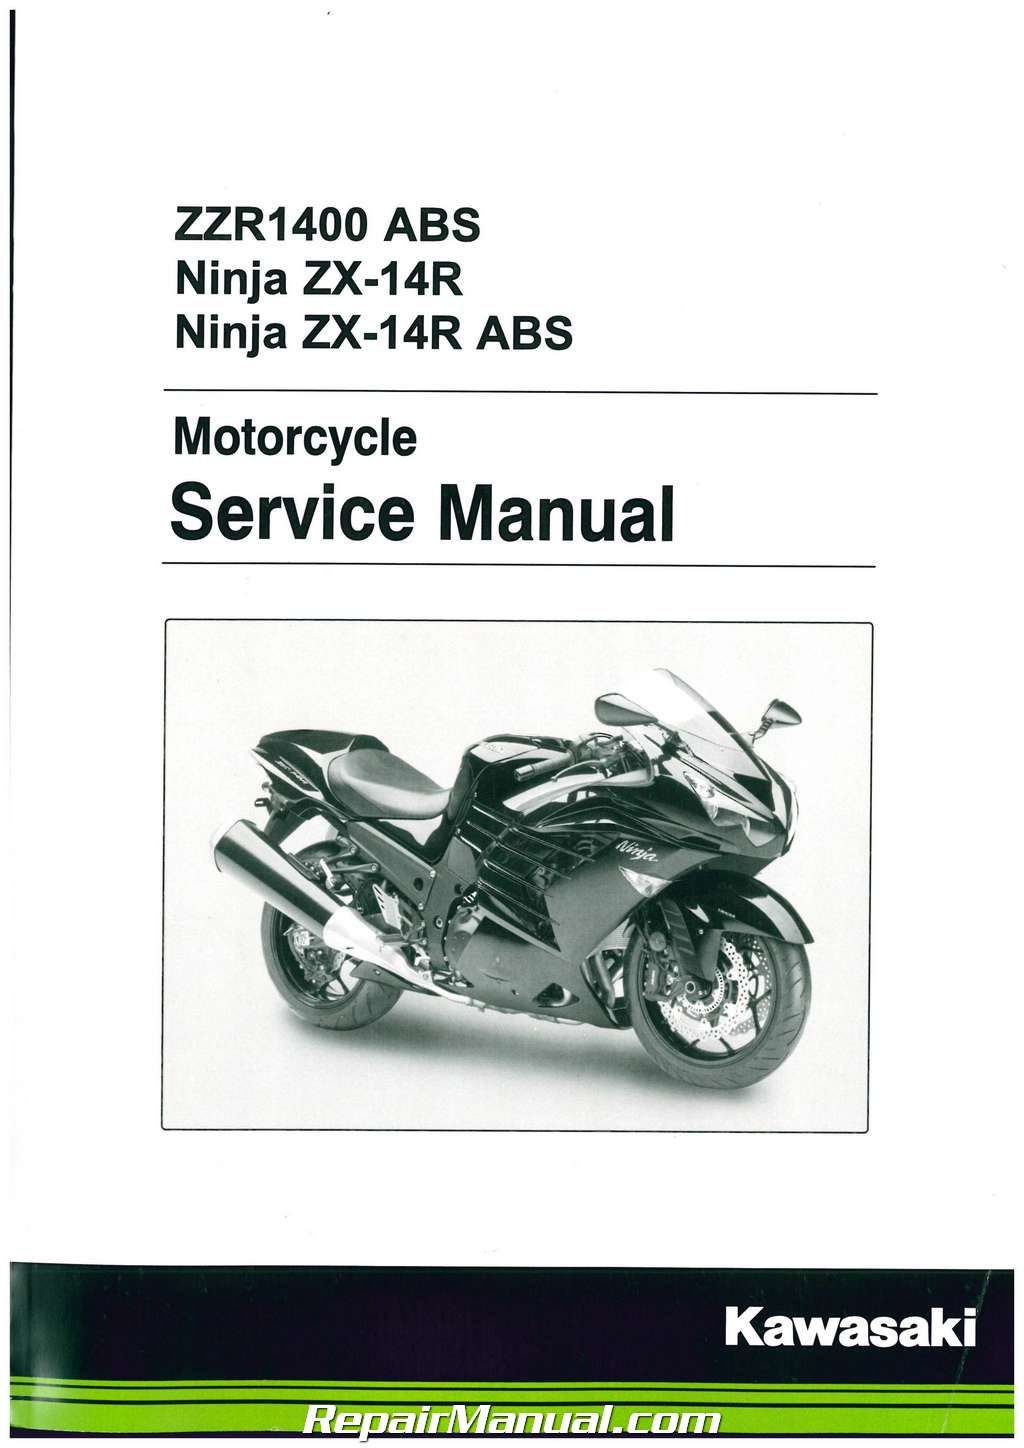 zzr600 cover jpg Array - kawasaki zzr 1400 abs ninja zx 14r abs 2012 2015  motorcycle service rh repairmanual